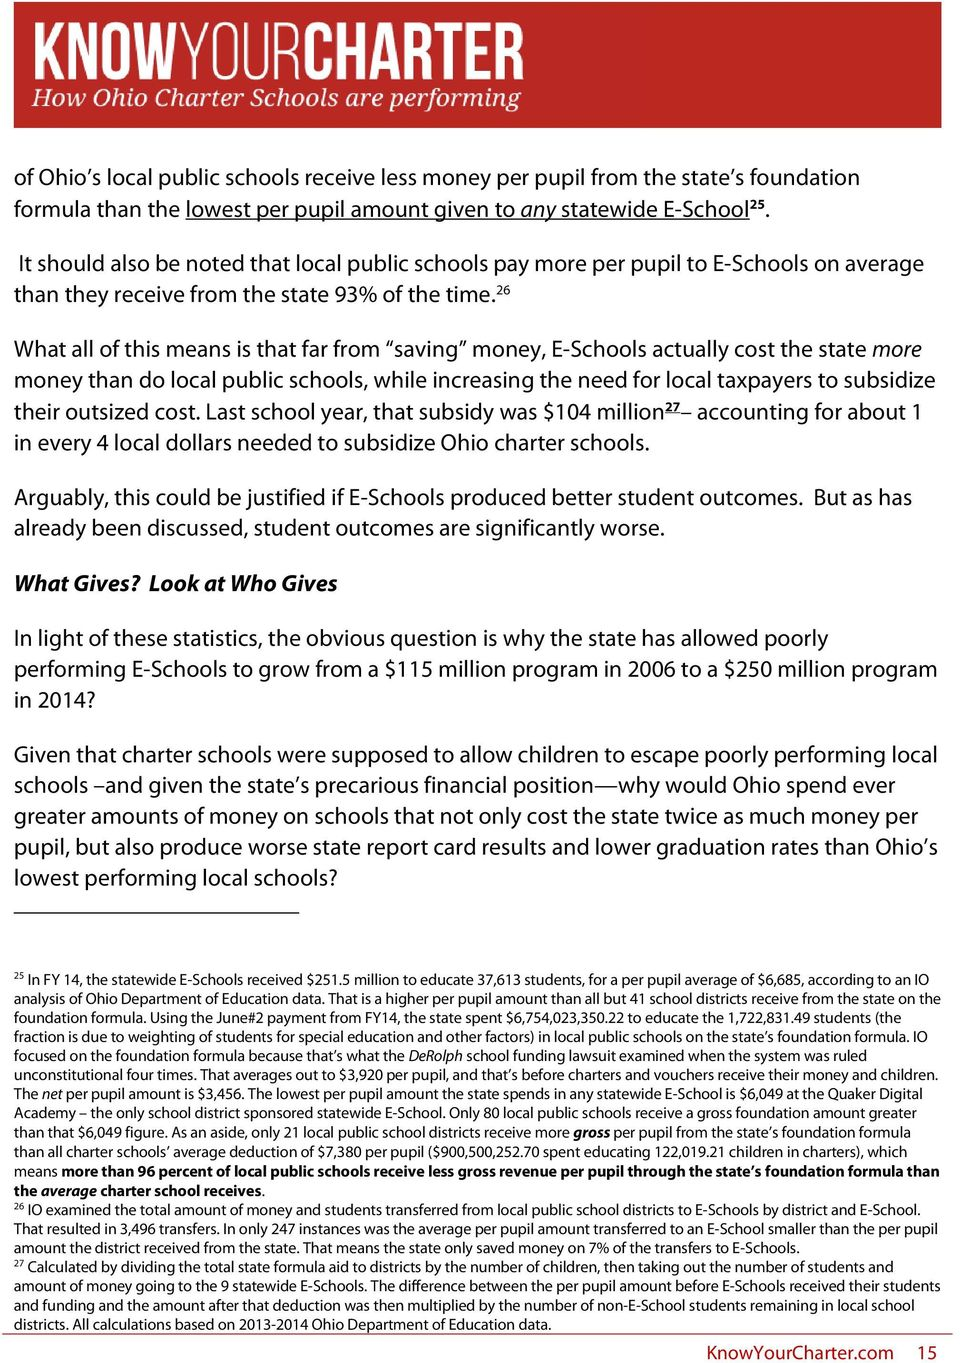 26 What all of this means is that far from saving money, E-Schools actually cost the state more money than do local public schools, while increasing the need for local taxpayers to subsidize their